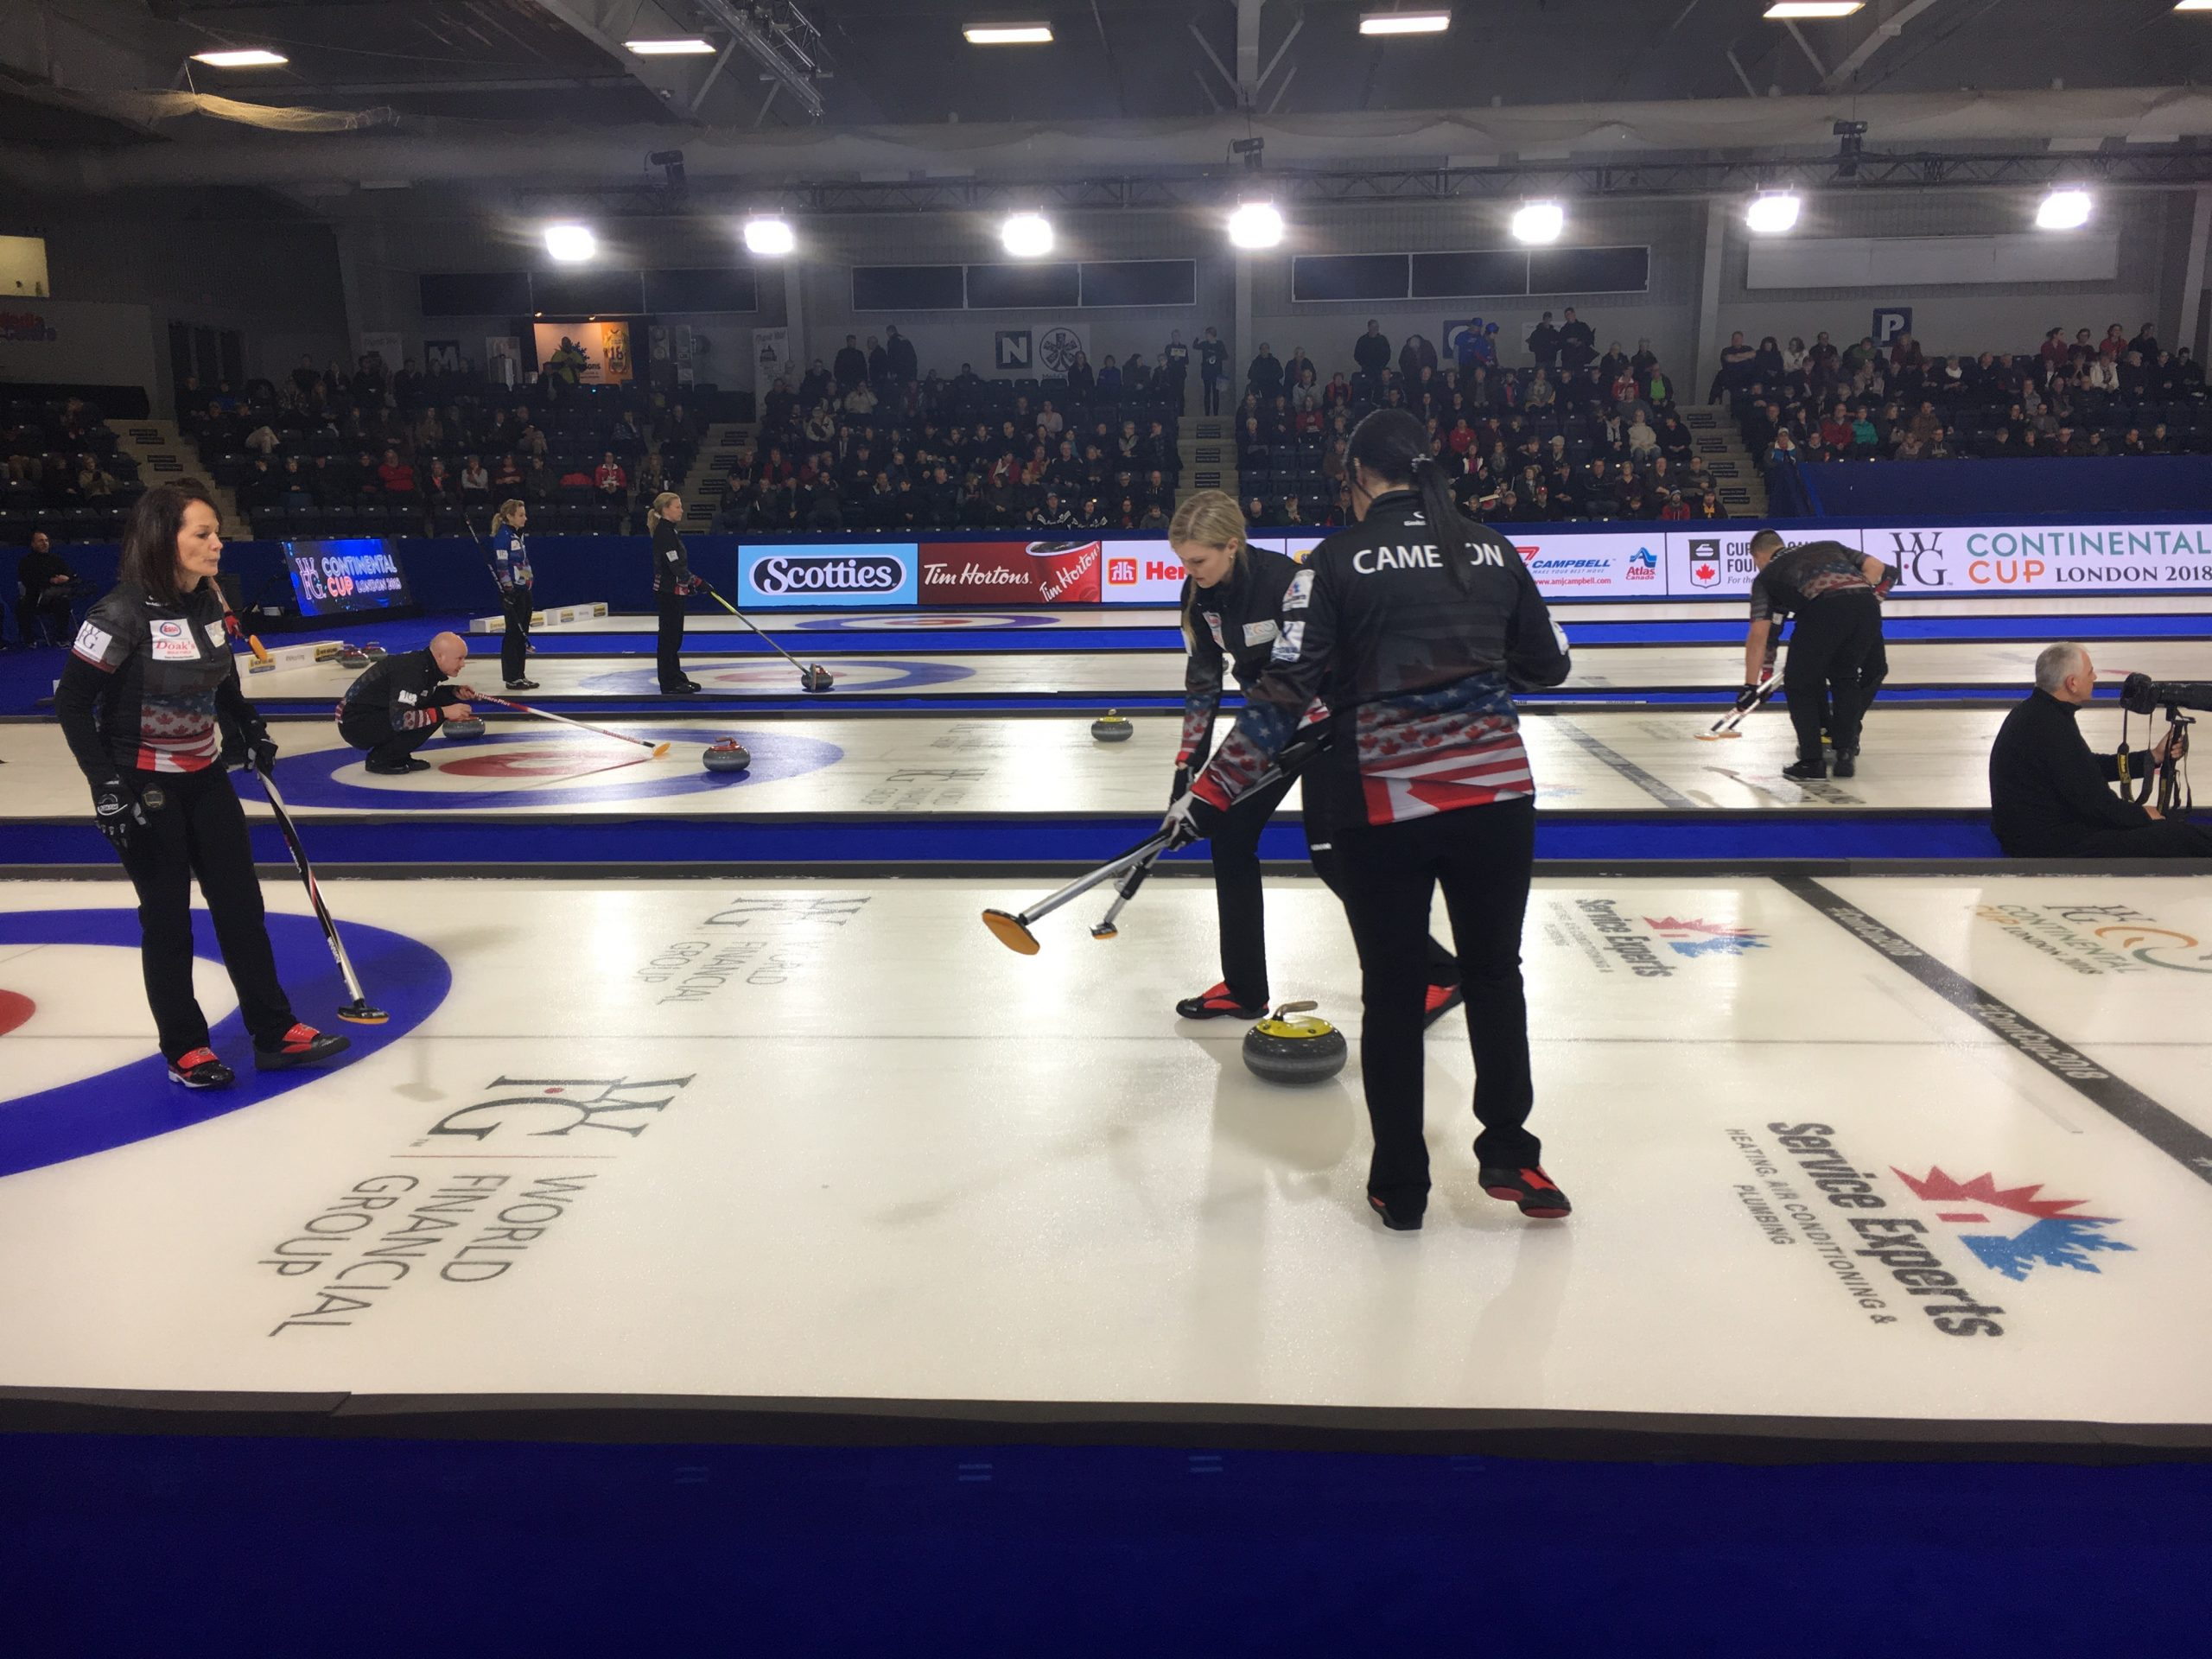 Curling's Continental Cup kicked off in London